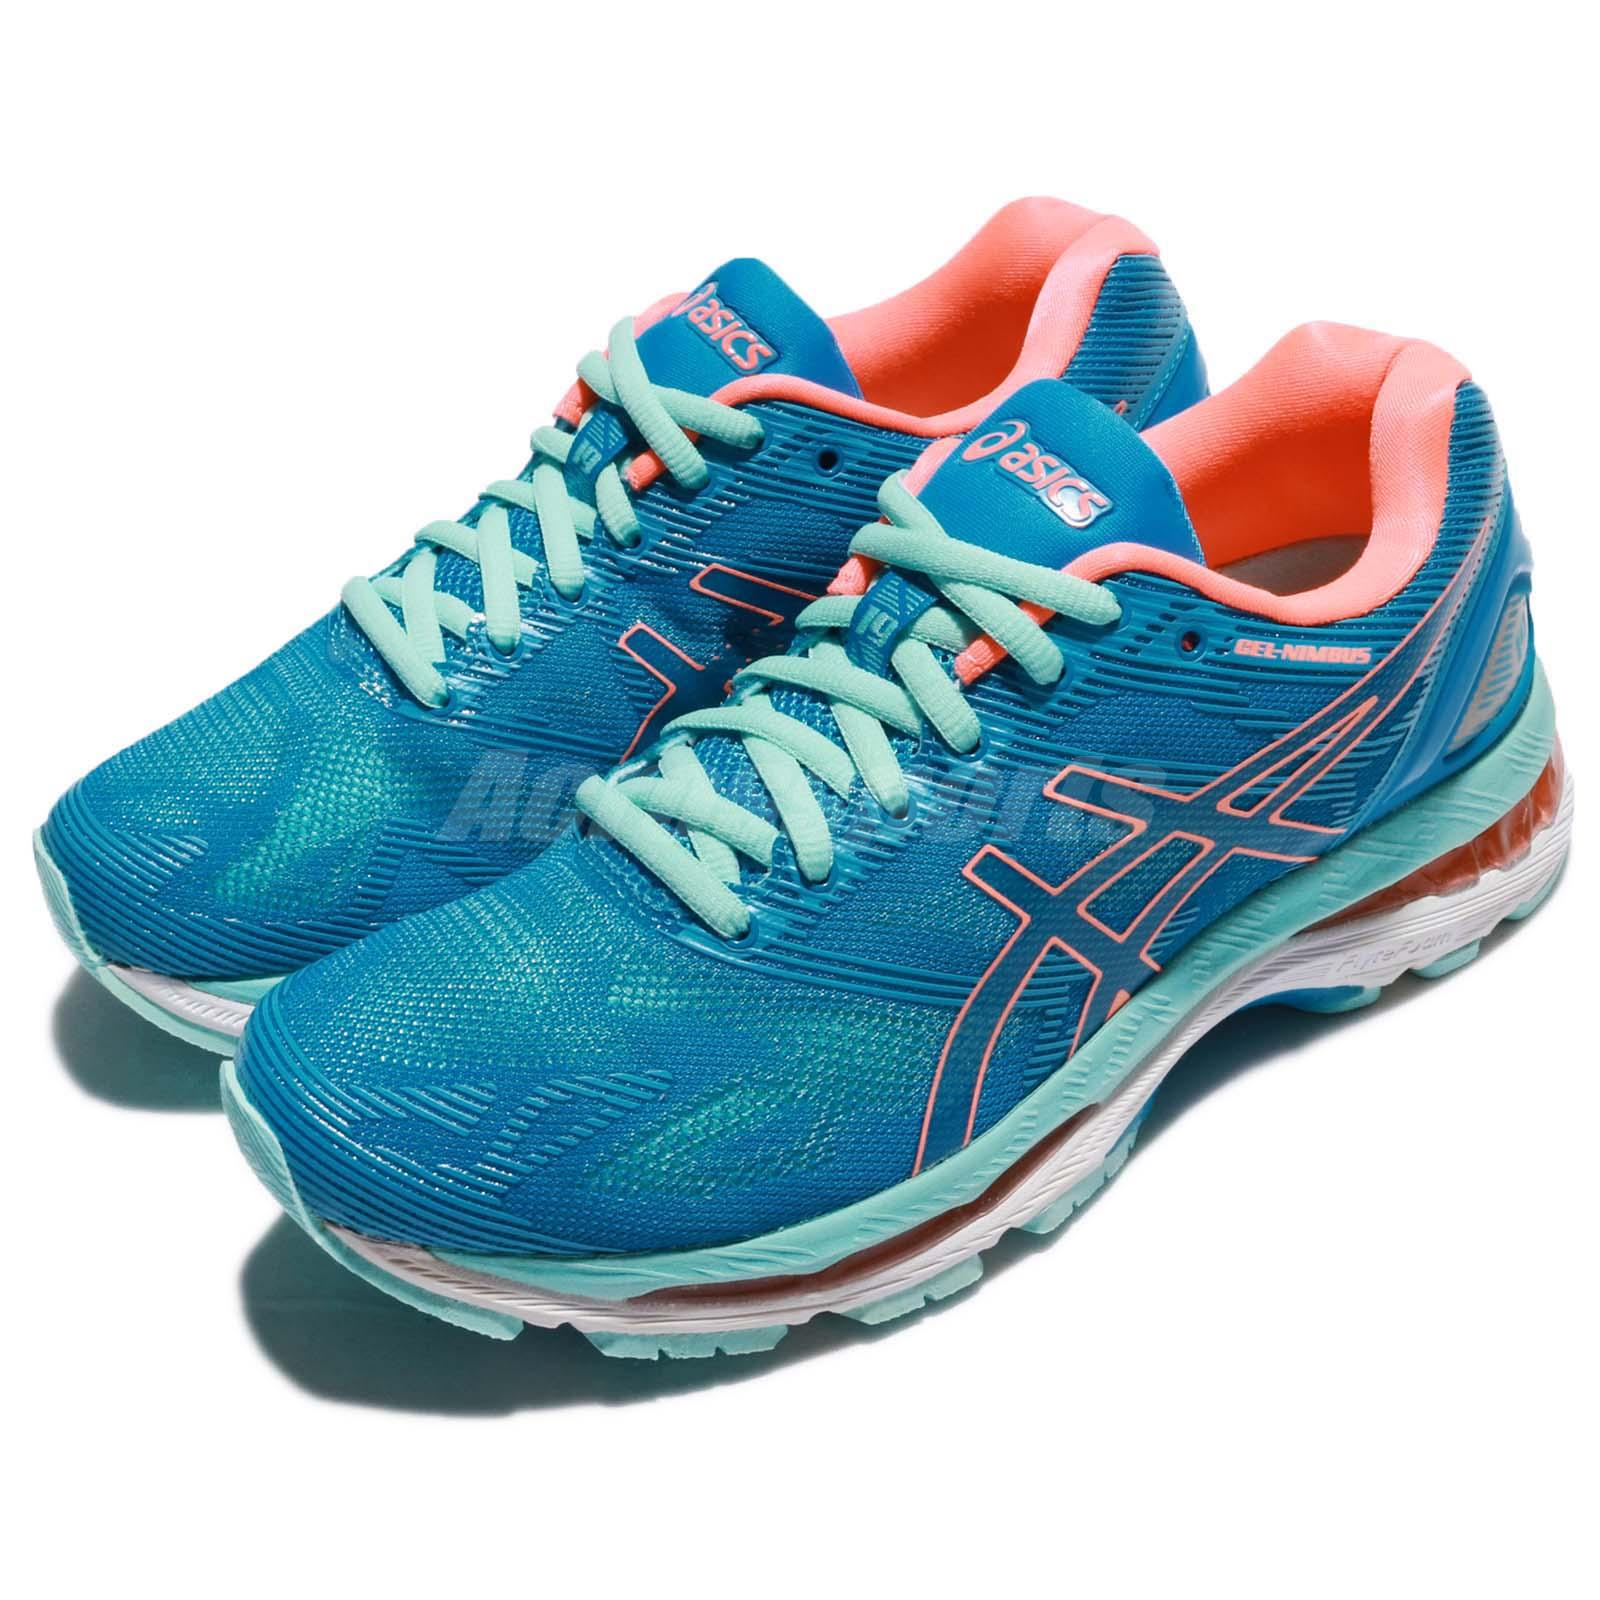 new product 46bc2 b4cdf Details about Asics Gel-Nimbus 19 D Wide Diva Blue Coral Aqua Women Running  Shoes T751N-4306